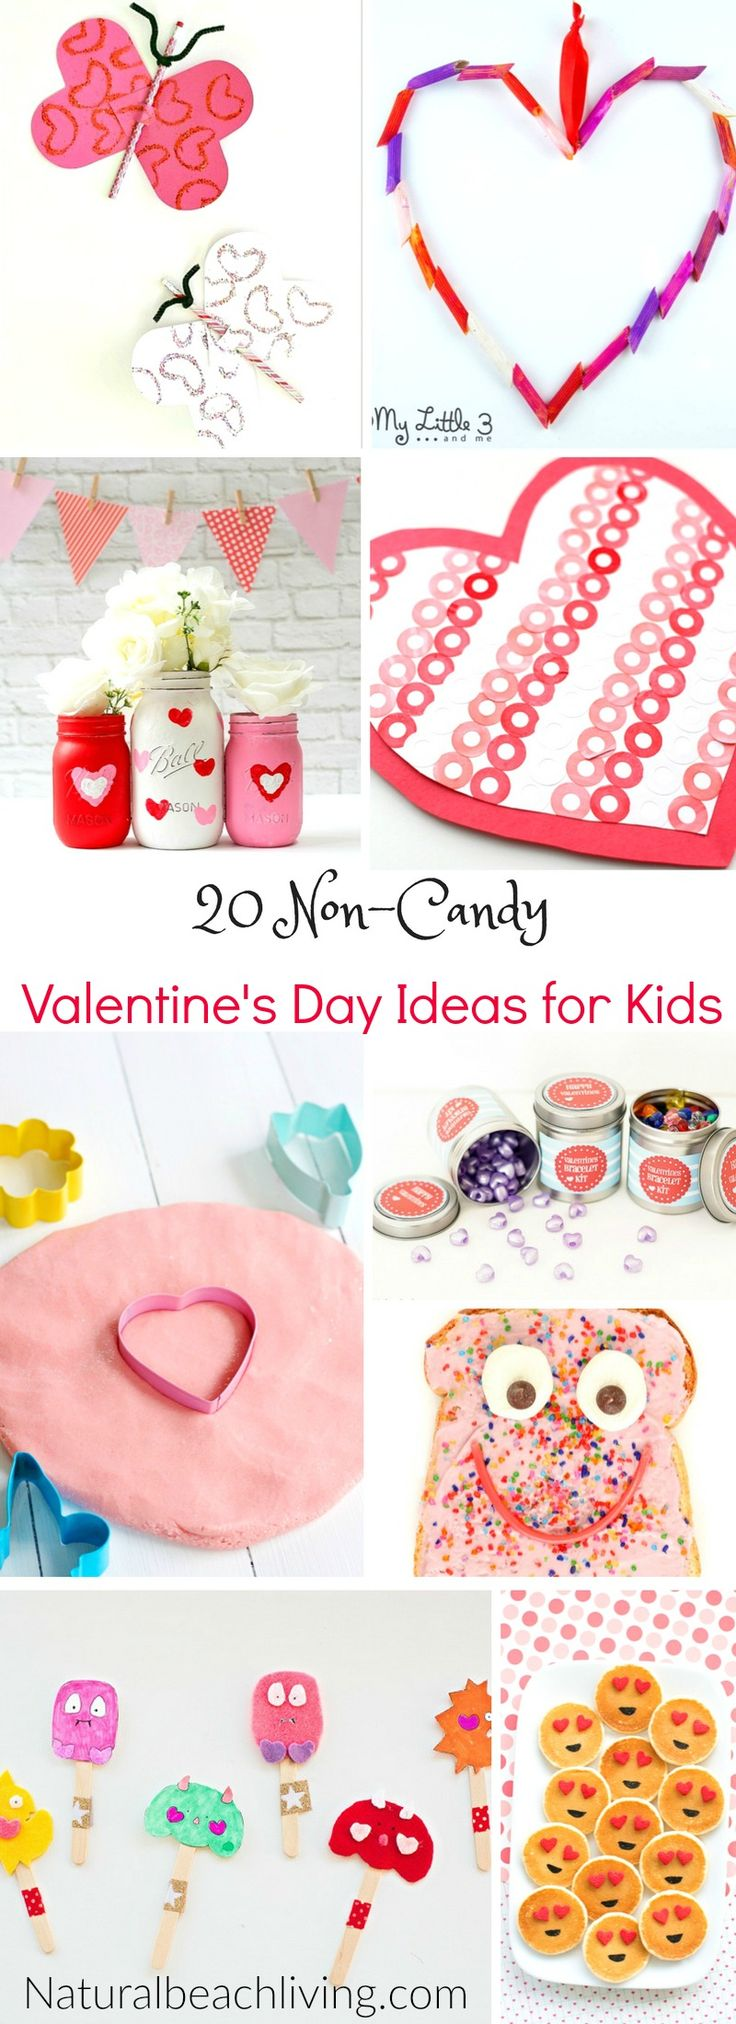 20 Perfect Non Candy Valentine Ideas for Kids, Valentine's Day party ideas, crafts, Valentine's Day sensory play, Emoji ideas, Valentine's Day Printables